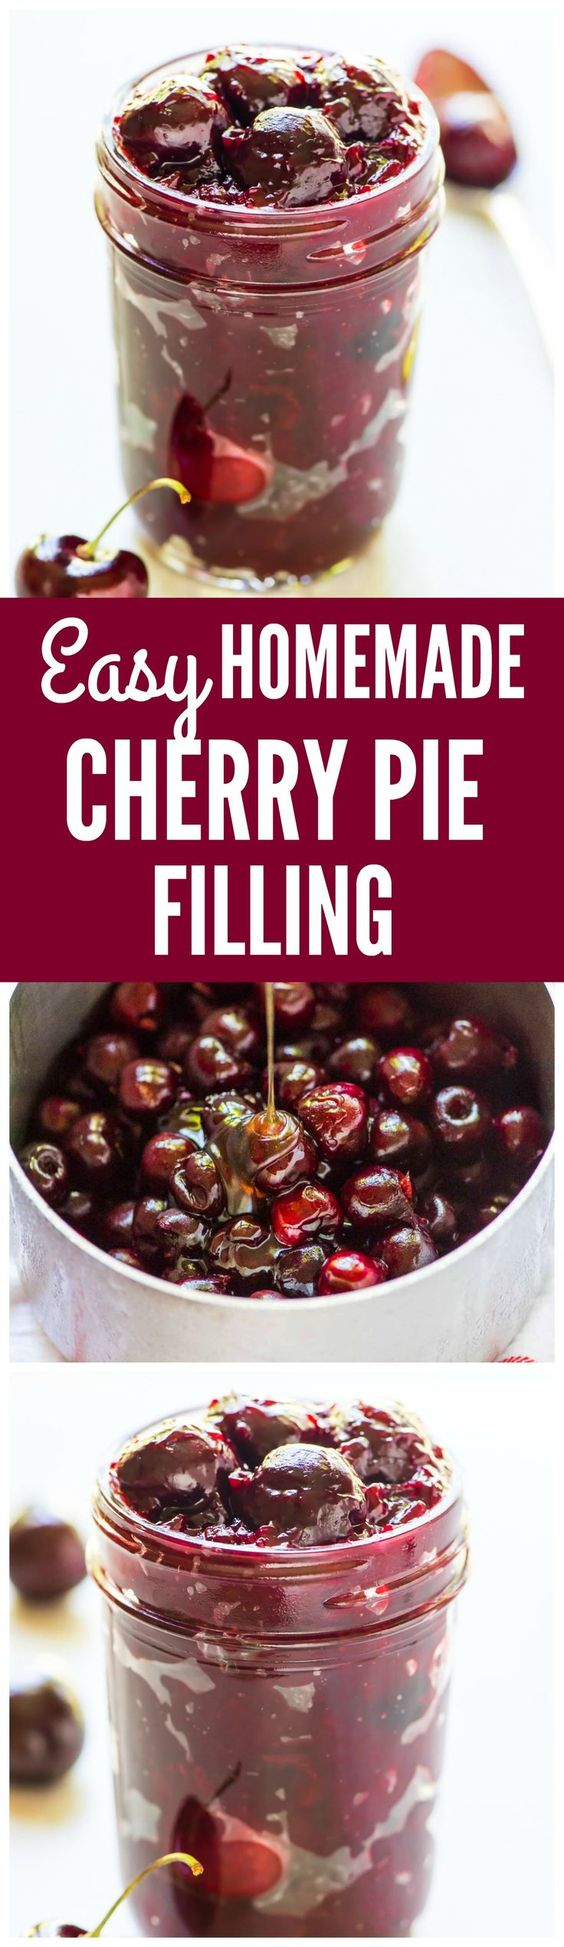 Ditch the canned filling and make your own homemade cherry pie filling from scratch! This EASY recipe will have you eating straight from the jar! Simple ingredients and naturally sweetened with honey. Recipe at wellplated.com @Well Plated